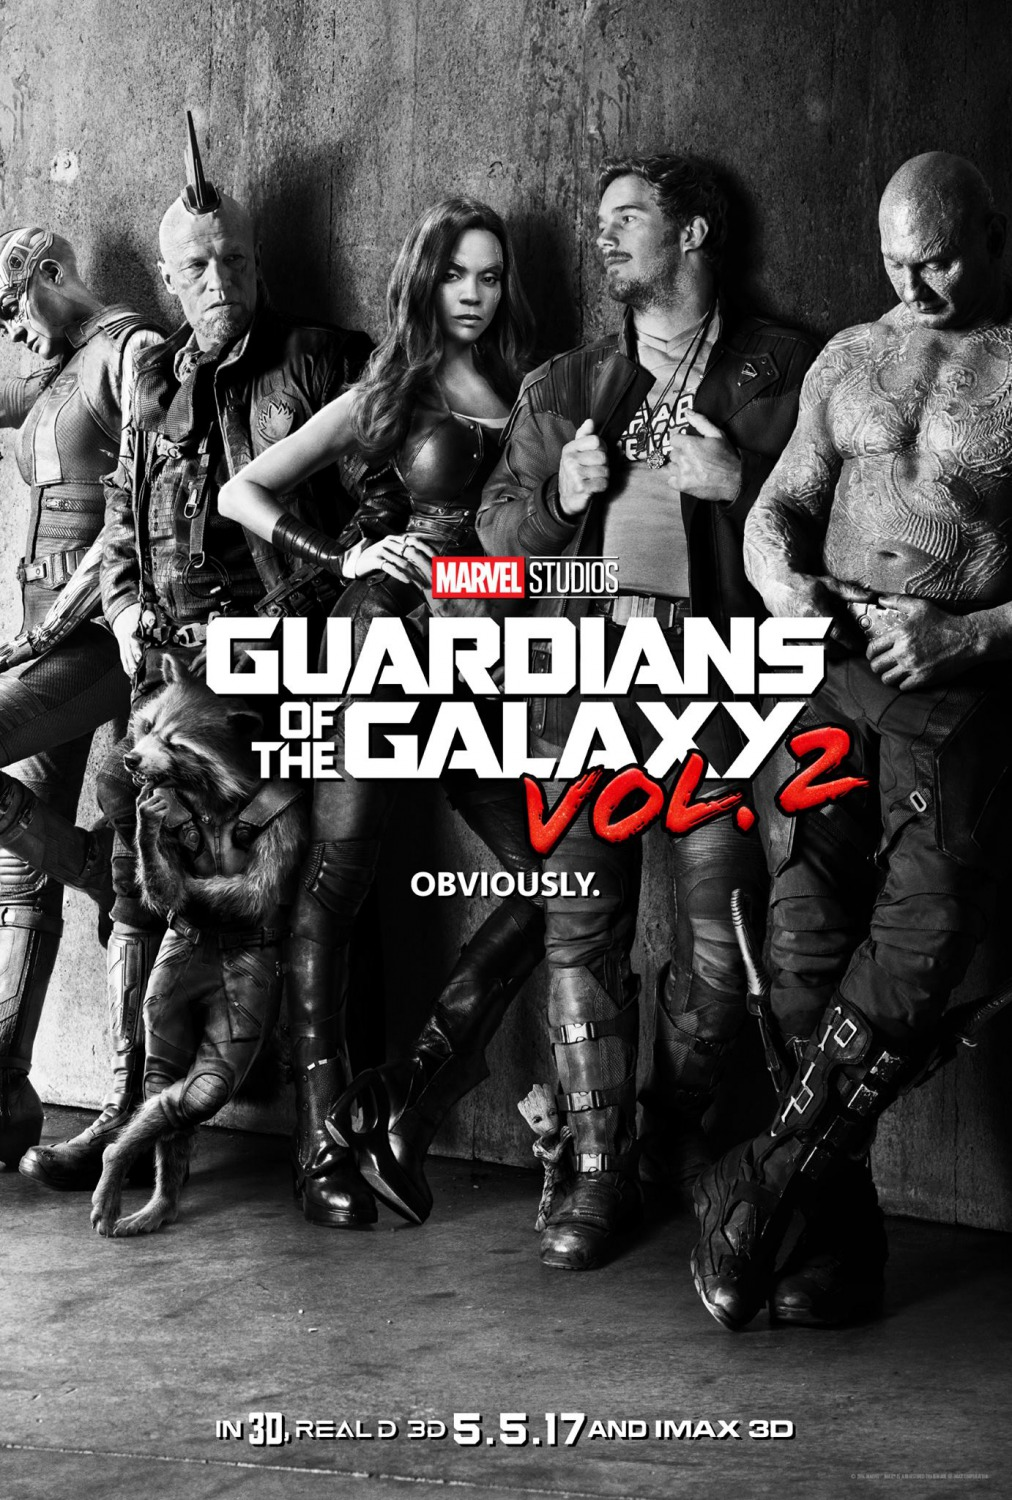 Guardianes de la Galaxia vol.2 trailer.